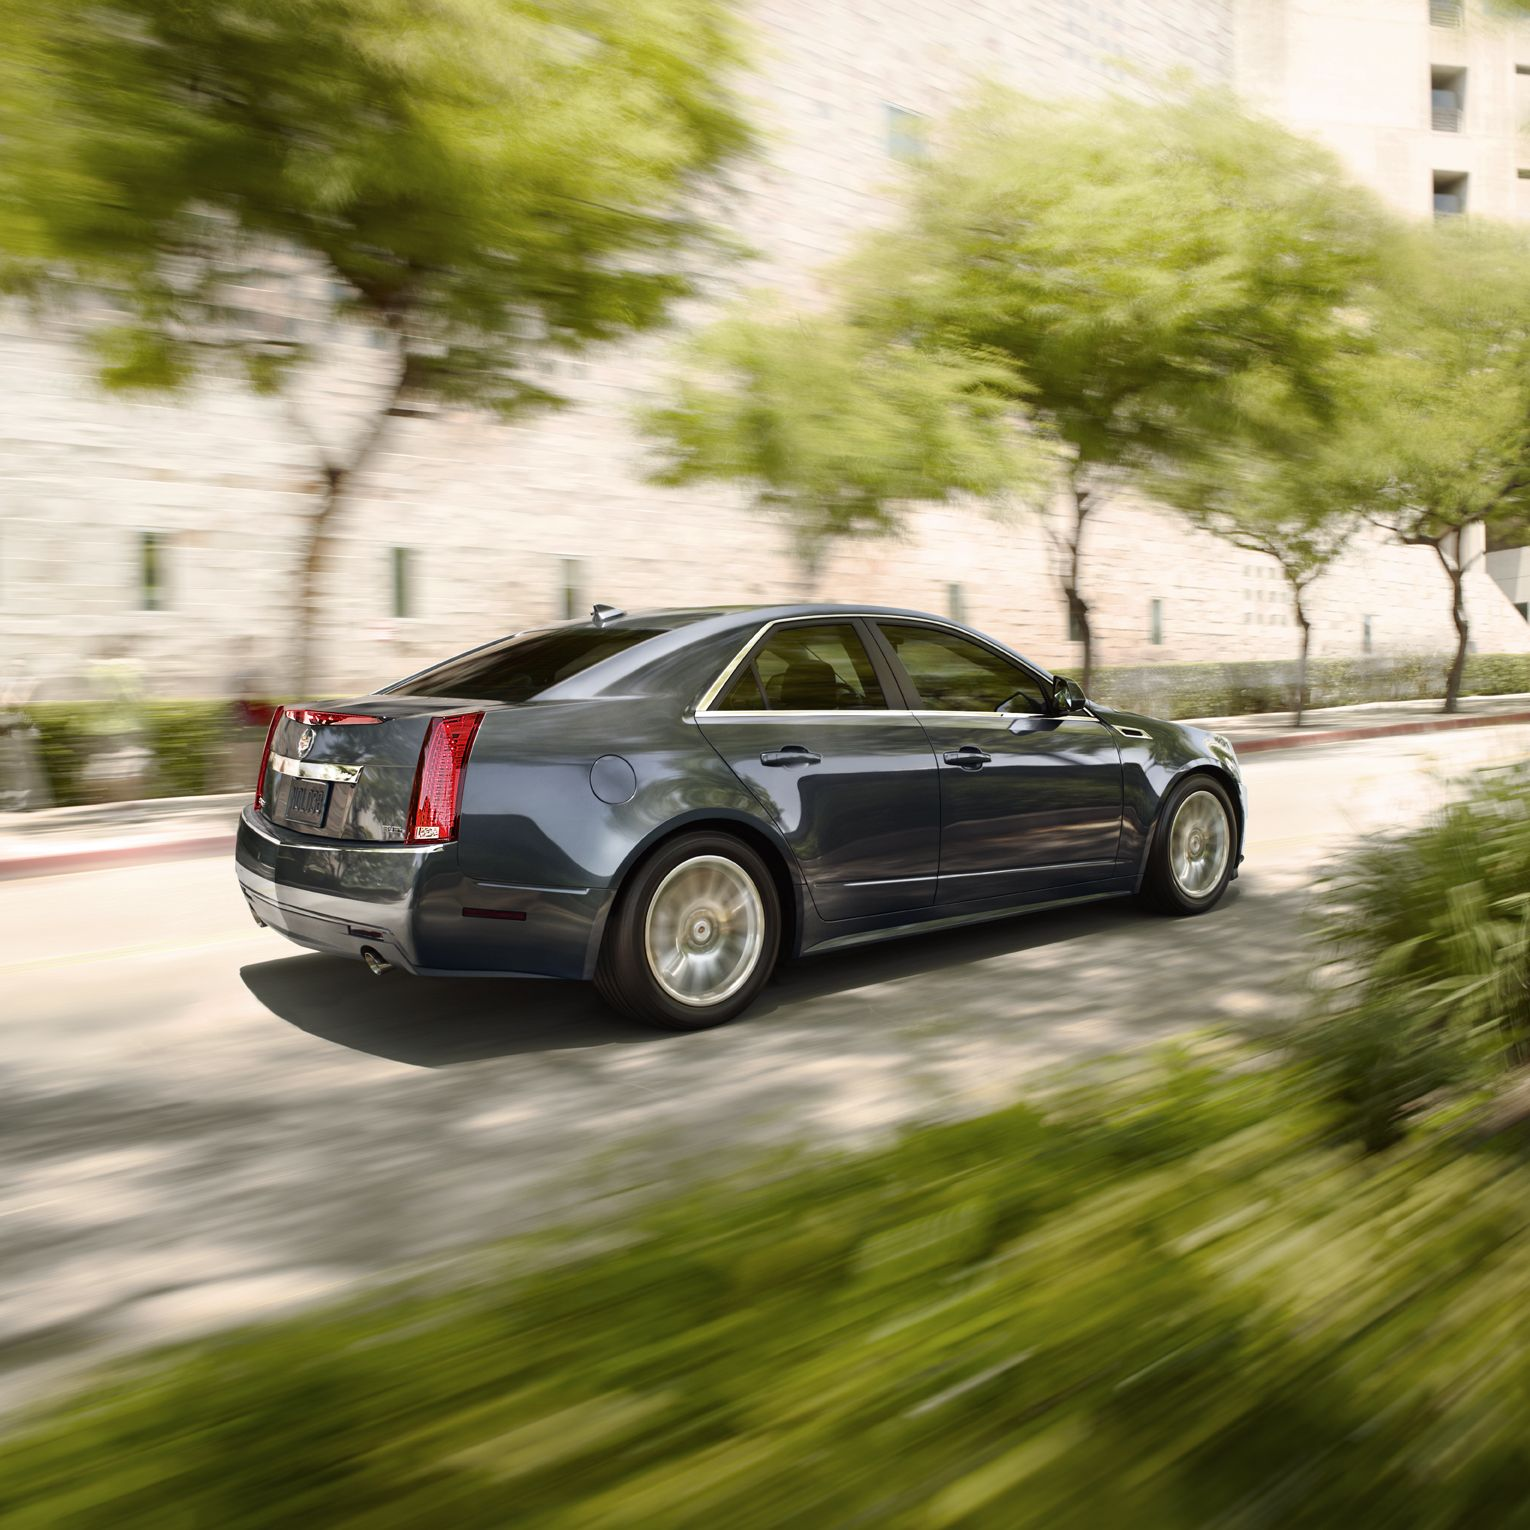 Cadillac Car Rental: Sports Sedan, Cadillac, Cadillac Cts